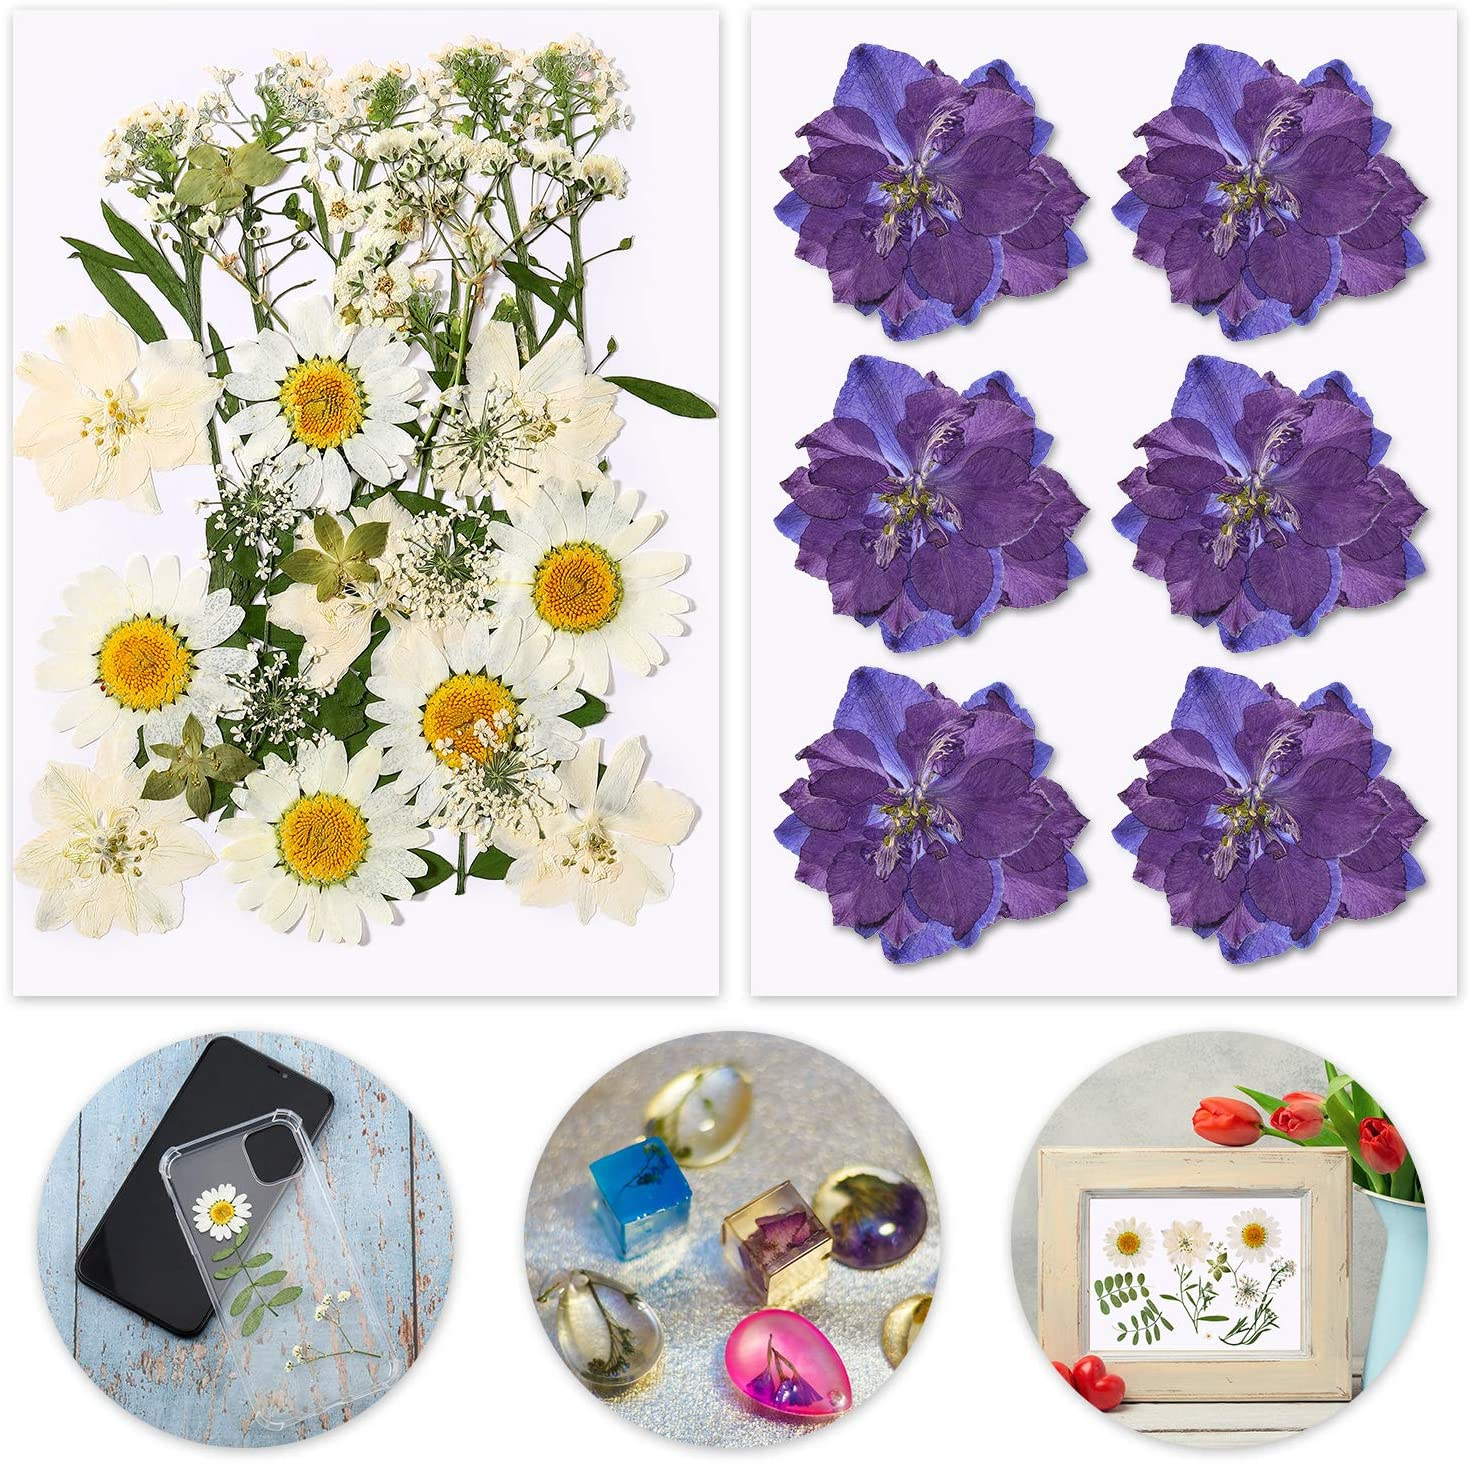 BBTO 2 Sets Real Dried Pressed Flowers Leaves Petals for DIY Crafts, Natural Colorful Pressed Daisy Flowers for DIY Candle Resin Jewelry Nail Decor Art Floral Making Accessories